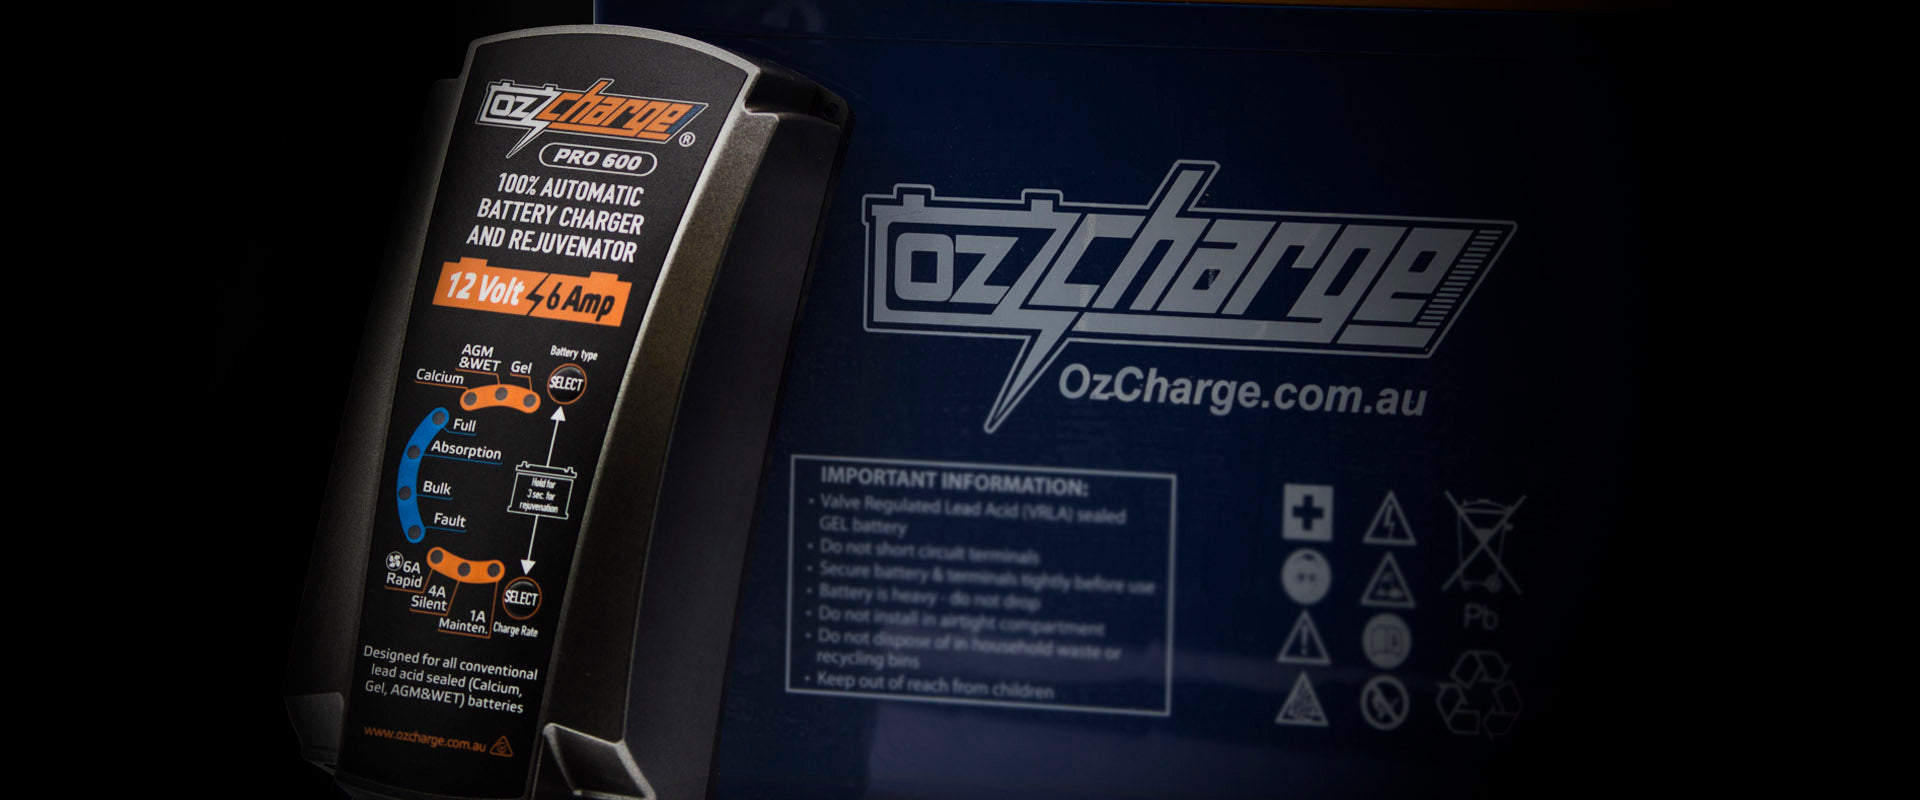 OzCharge Pro600 12 Volt 6Amp Smart Battery Charger and Maintainer